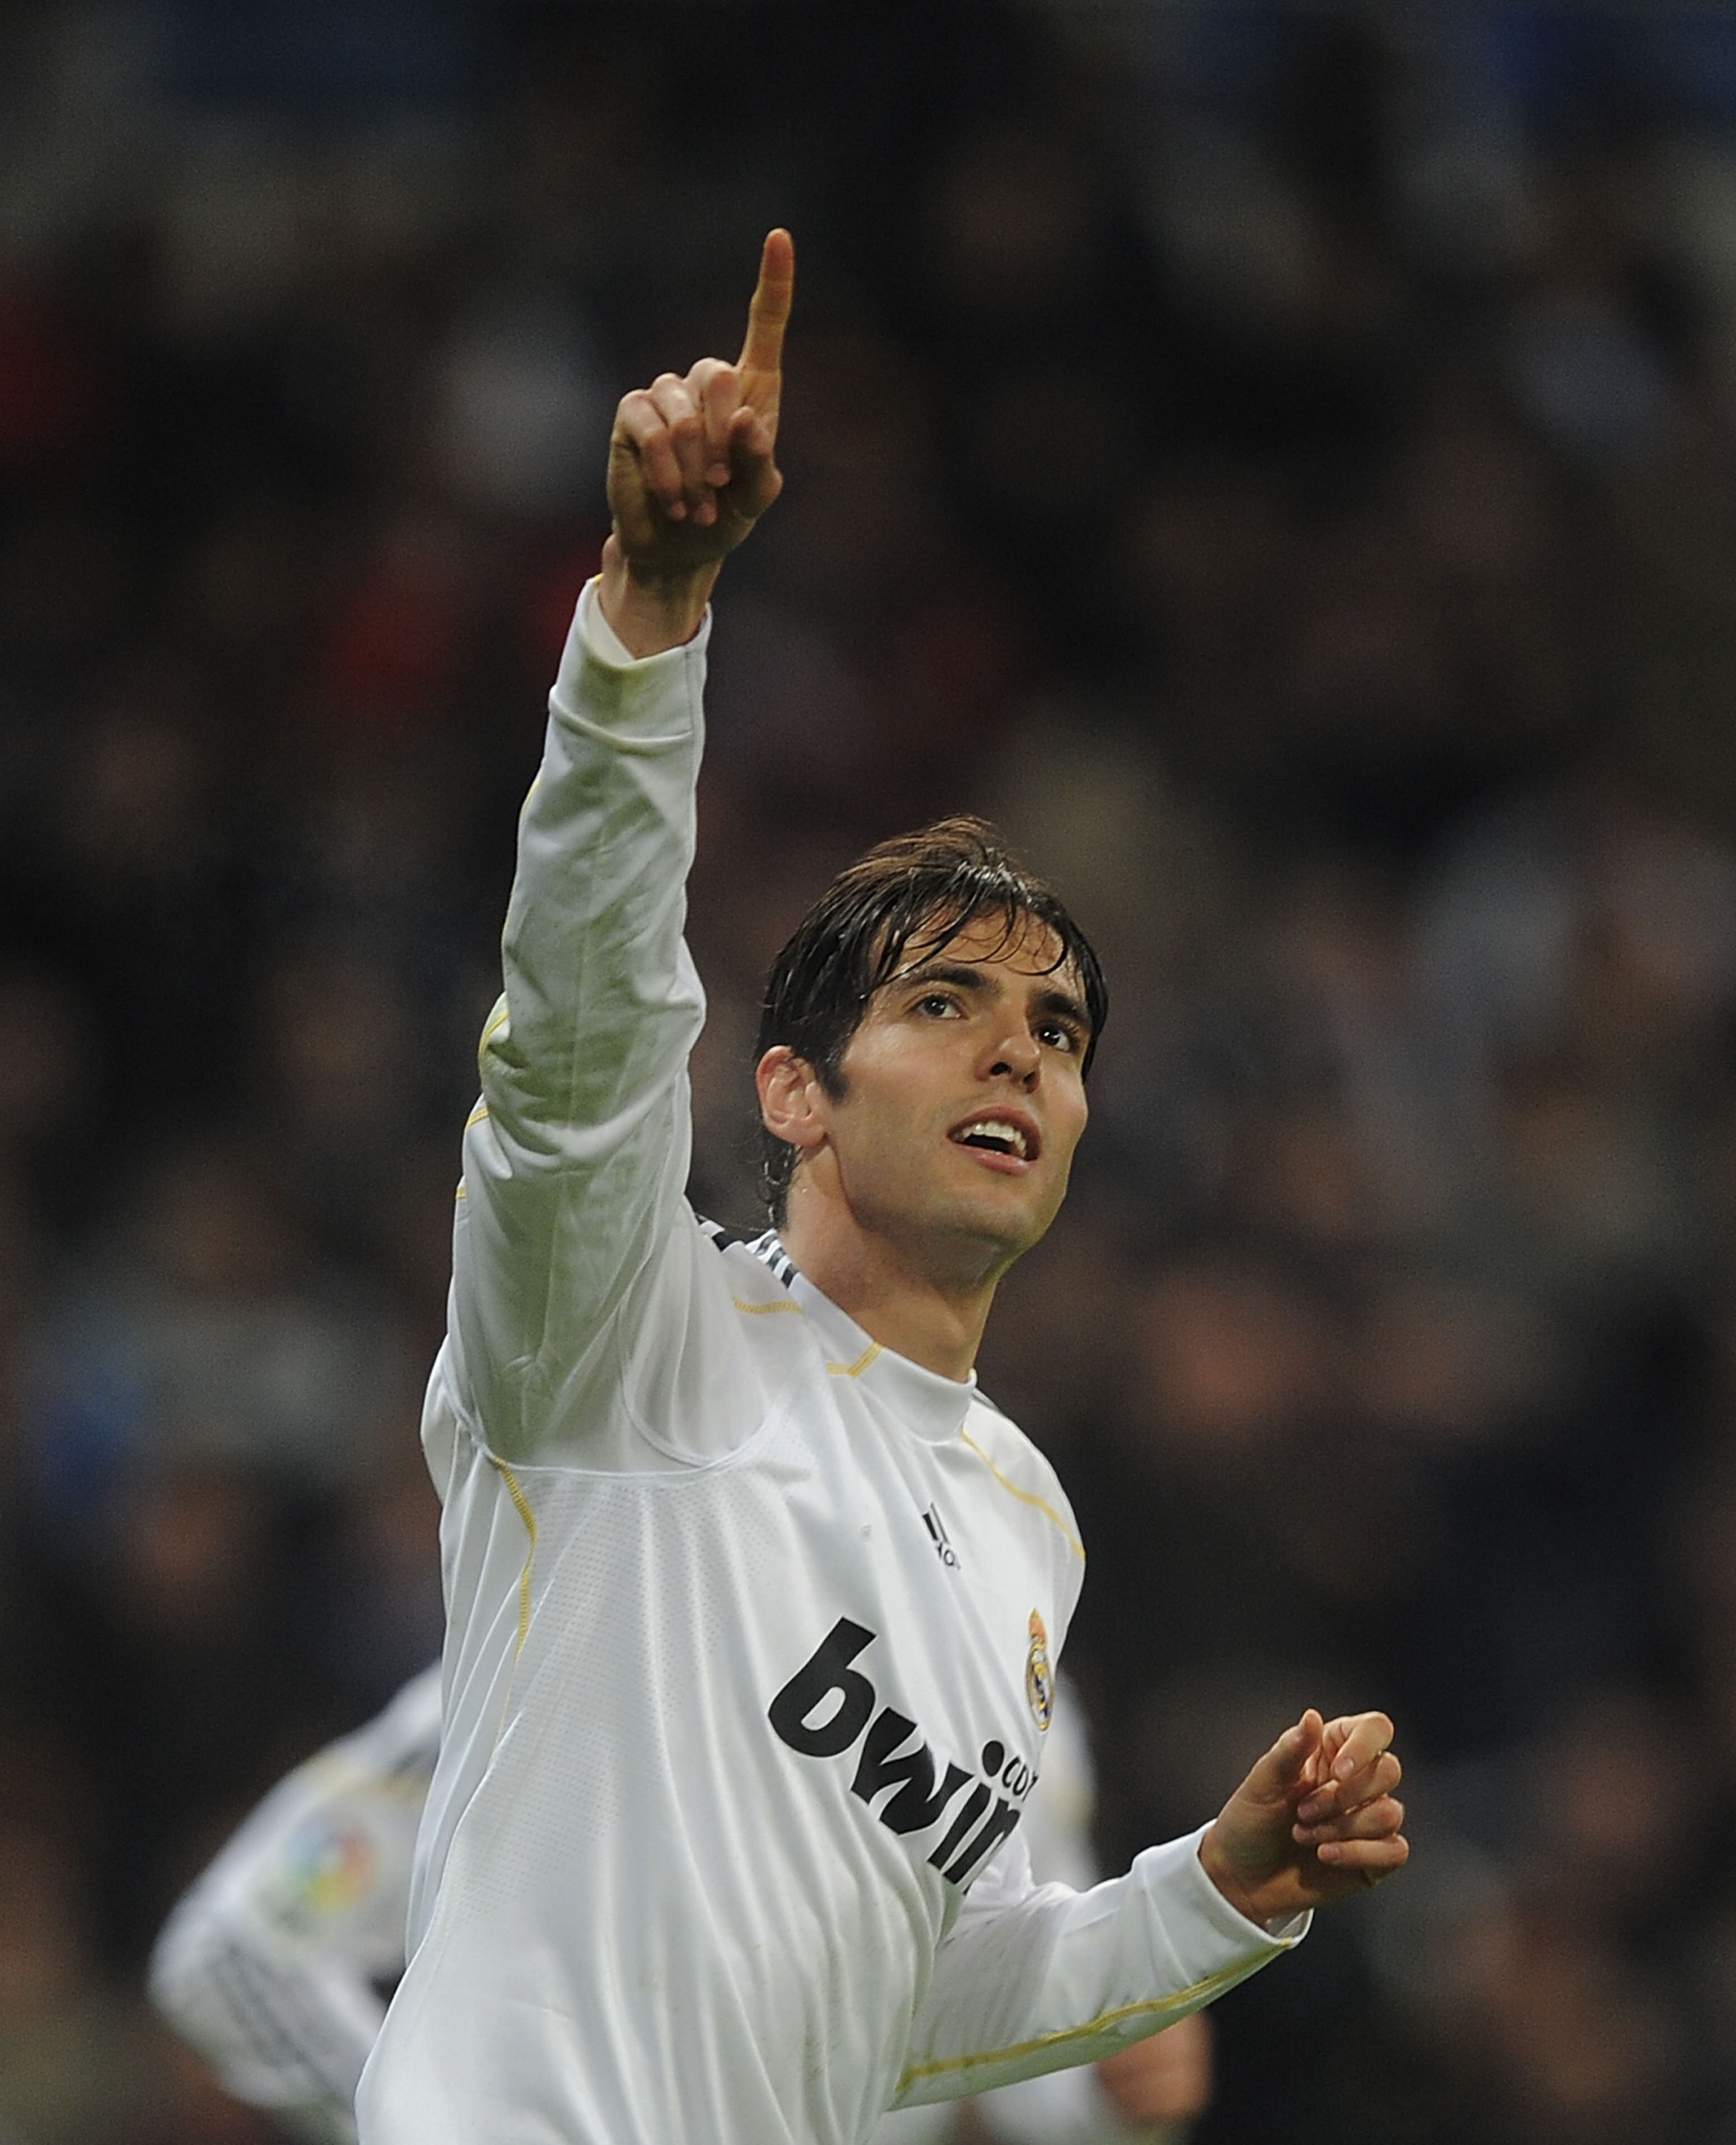 MADRID, SPAIN - FEBRUARY 21: Kaka of Real Madrid celebrates after scoring Real's second goal during the La Liga match between Real Madrid and Villarreal at Estadio Santiago Bernabeu on February 21, 2010 in Madrid, Spain.  (Photo by Denis Doyle/Getty Image